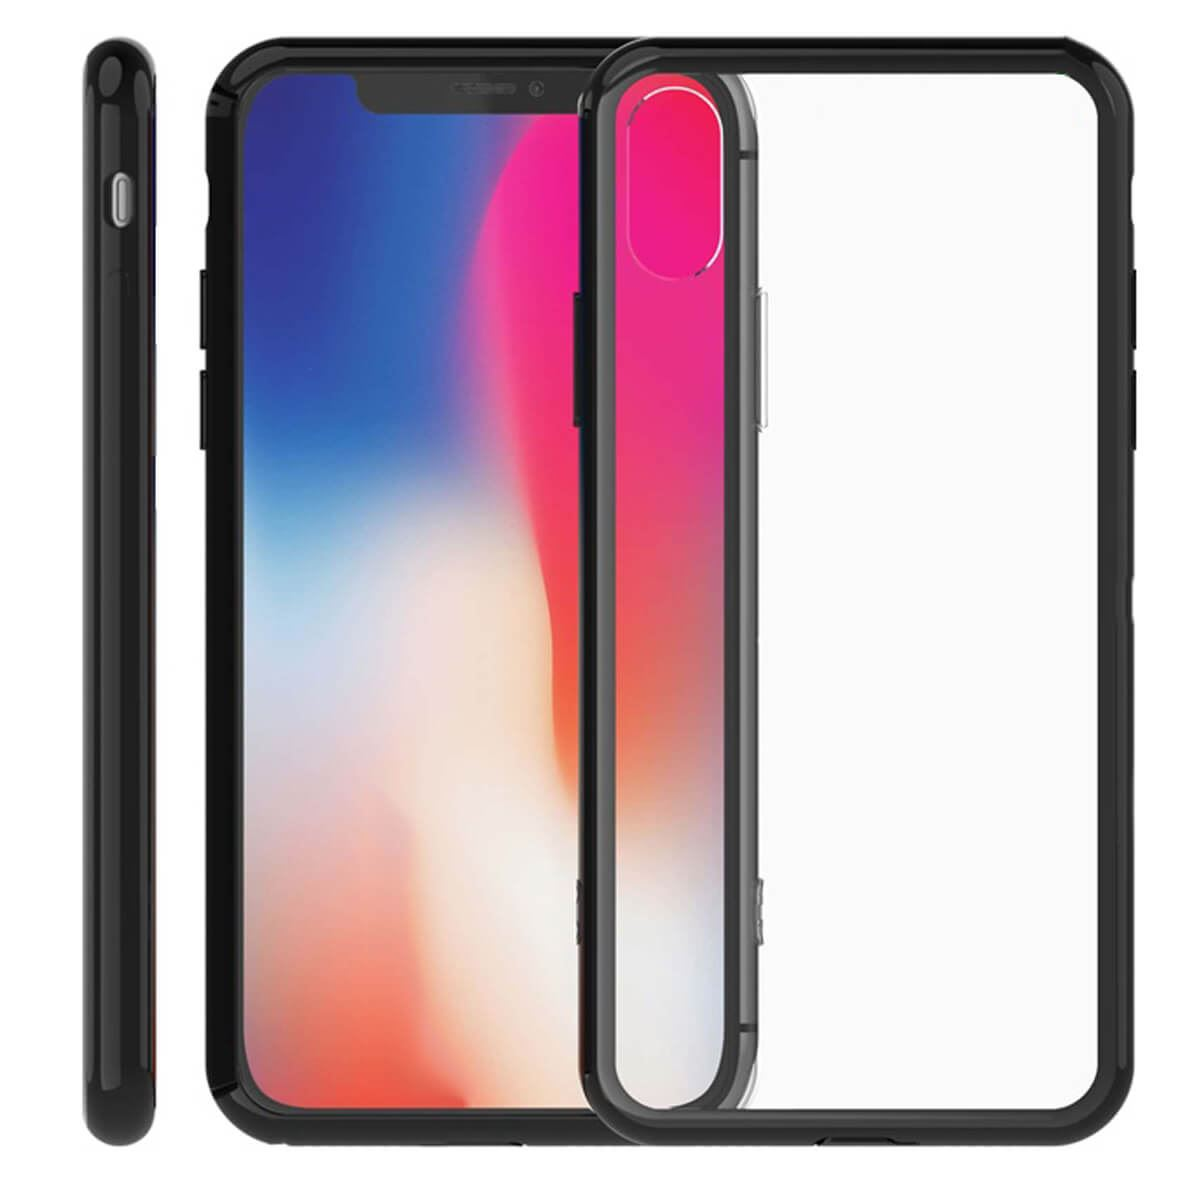 Shockproof-Case-For-Apple-iPhone-X-8-7-Plus-6-5s-Se-Clear-Slim-Bumper-TPU-Cover thumbnail 6